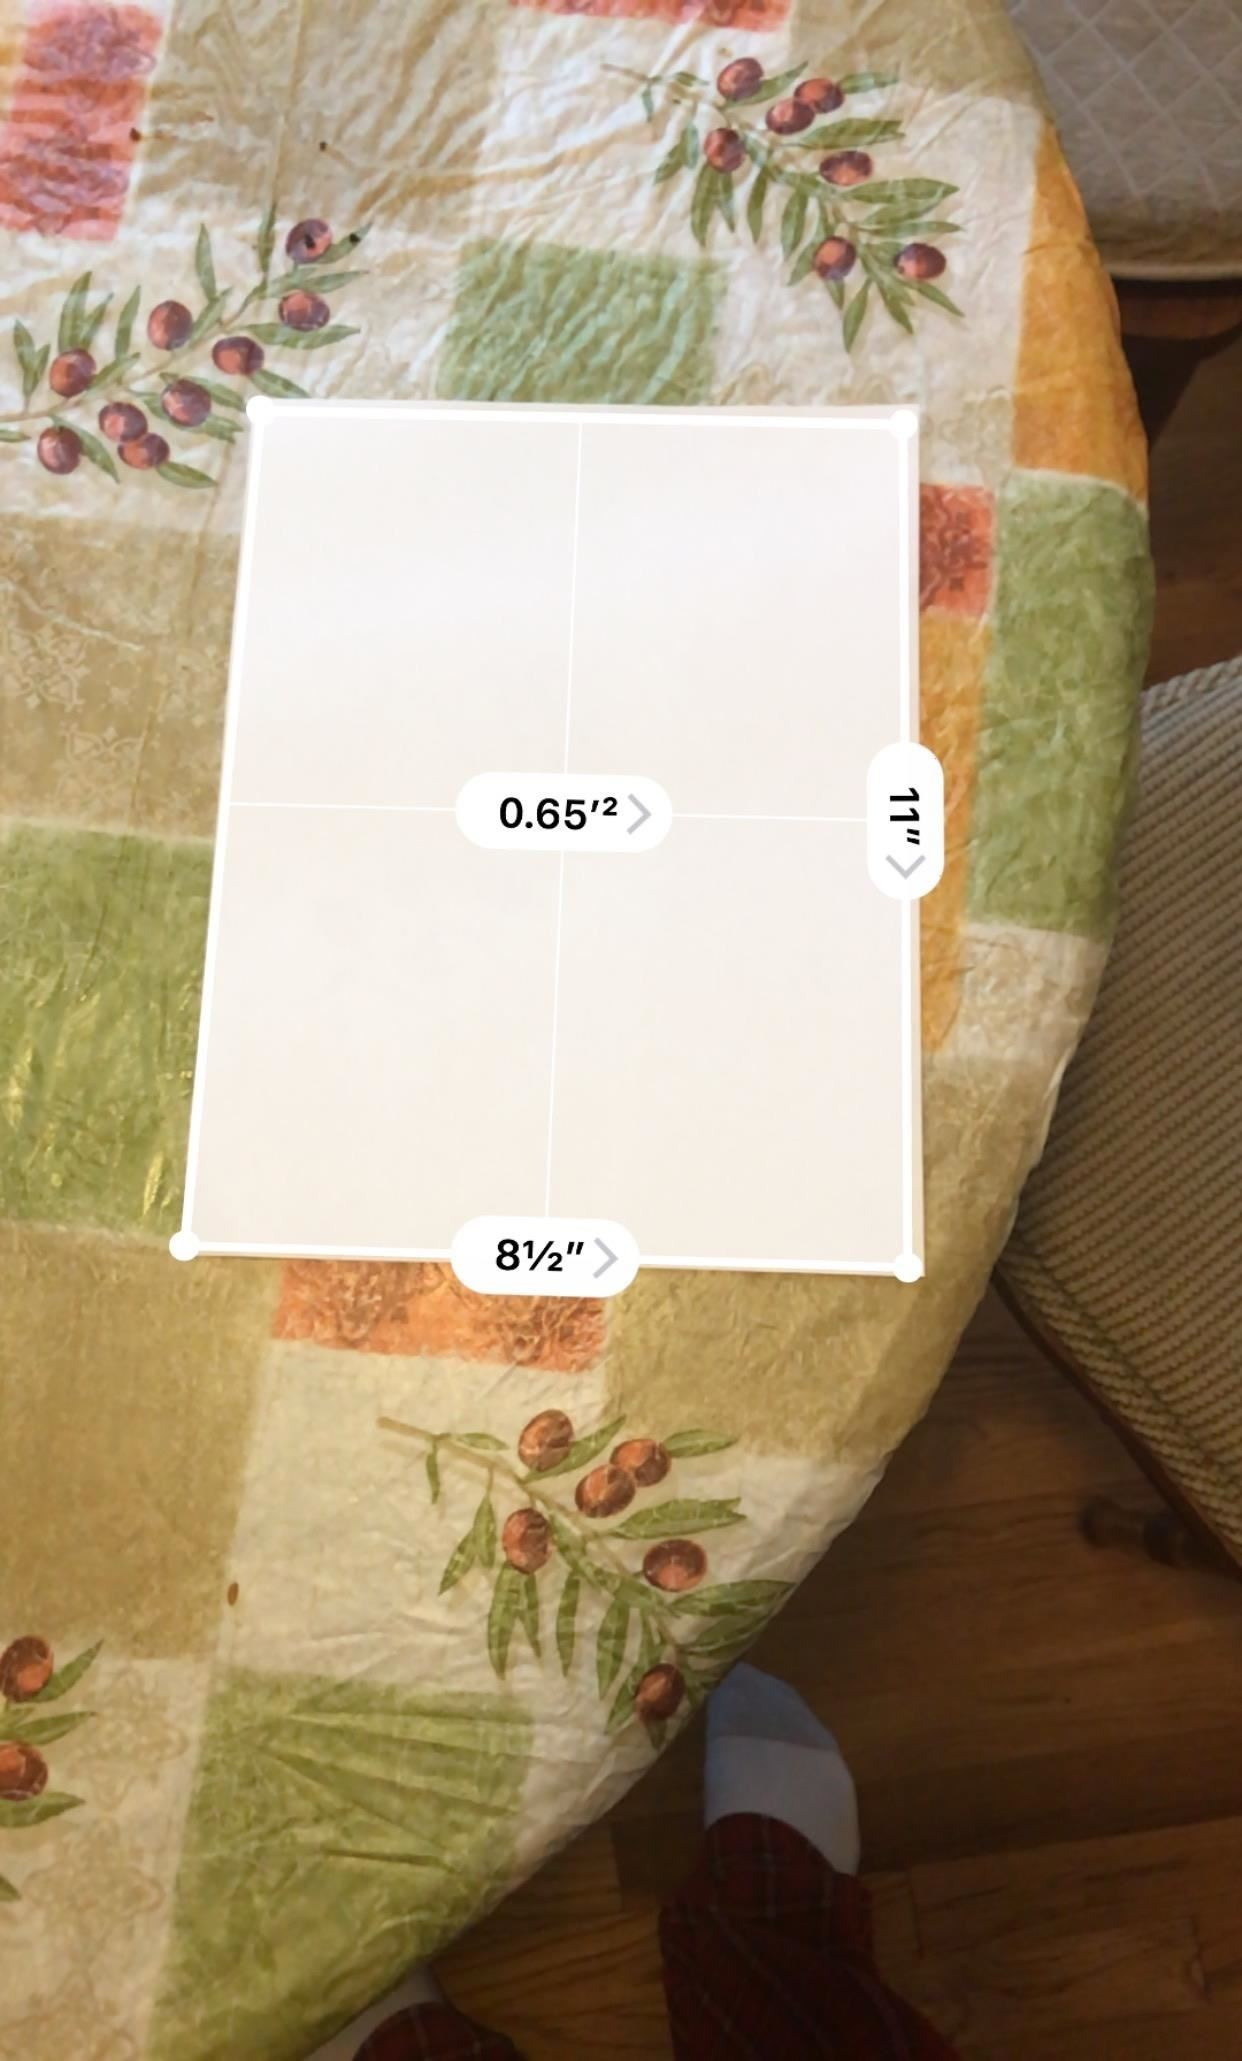 How to Measure Real-World Objects with Your iPhone in iOS 12